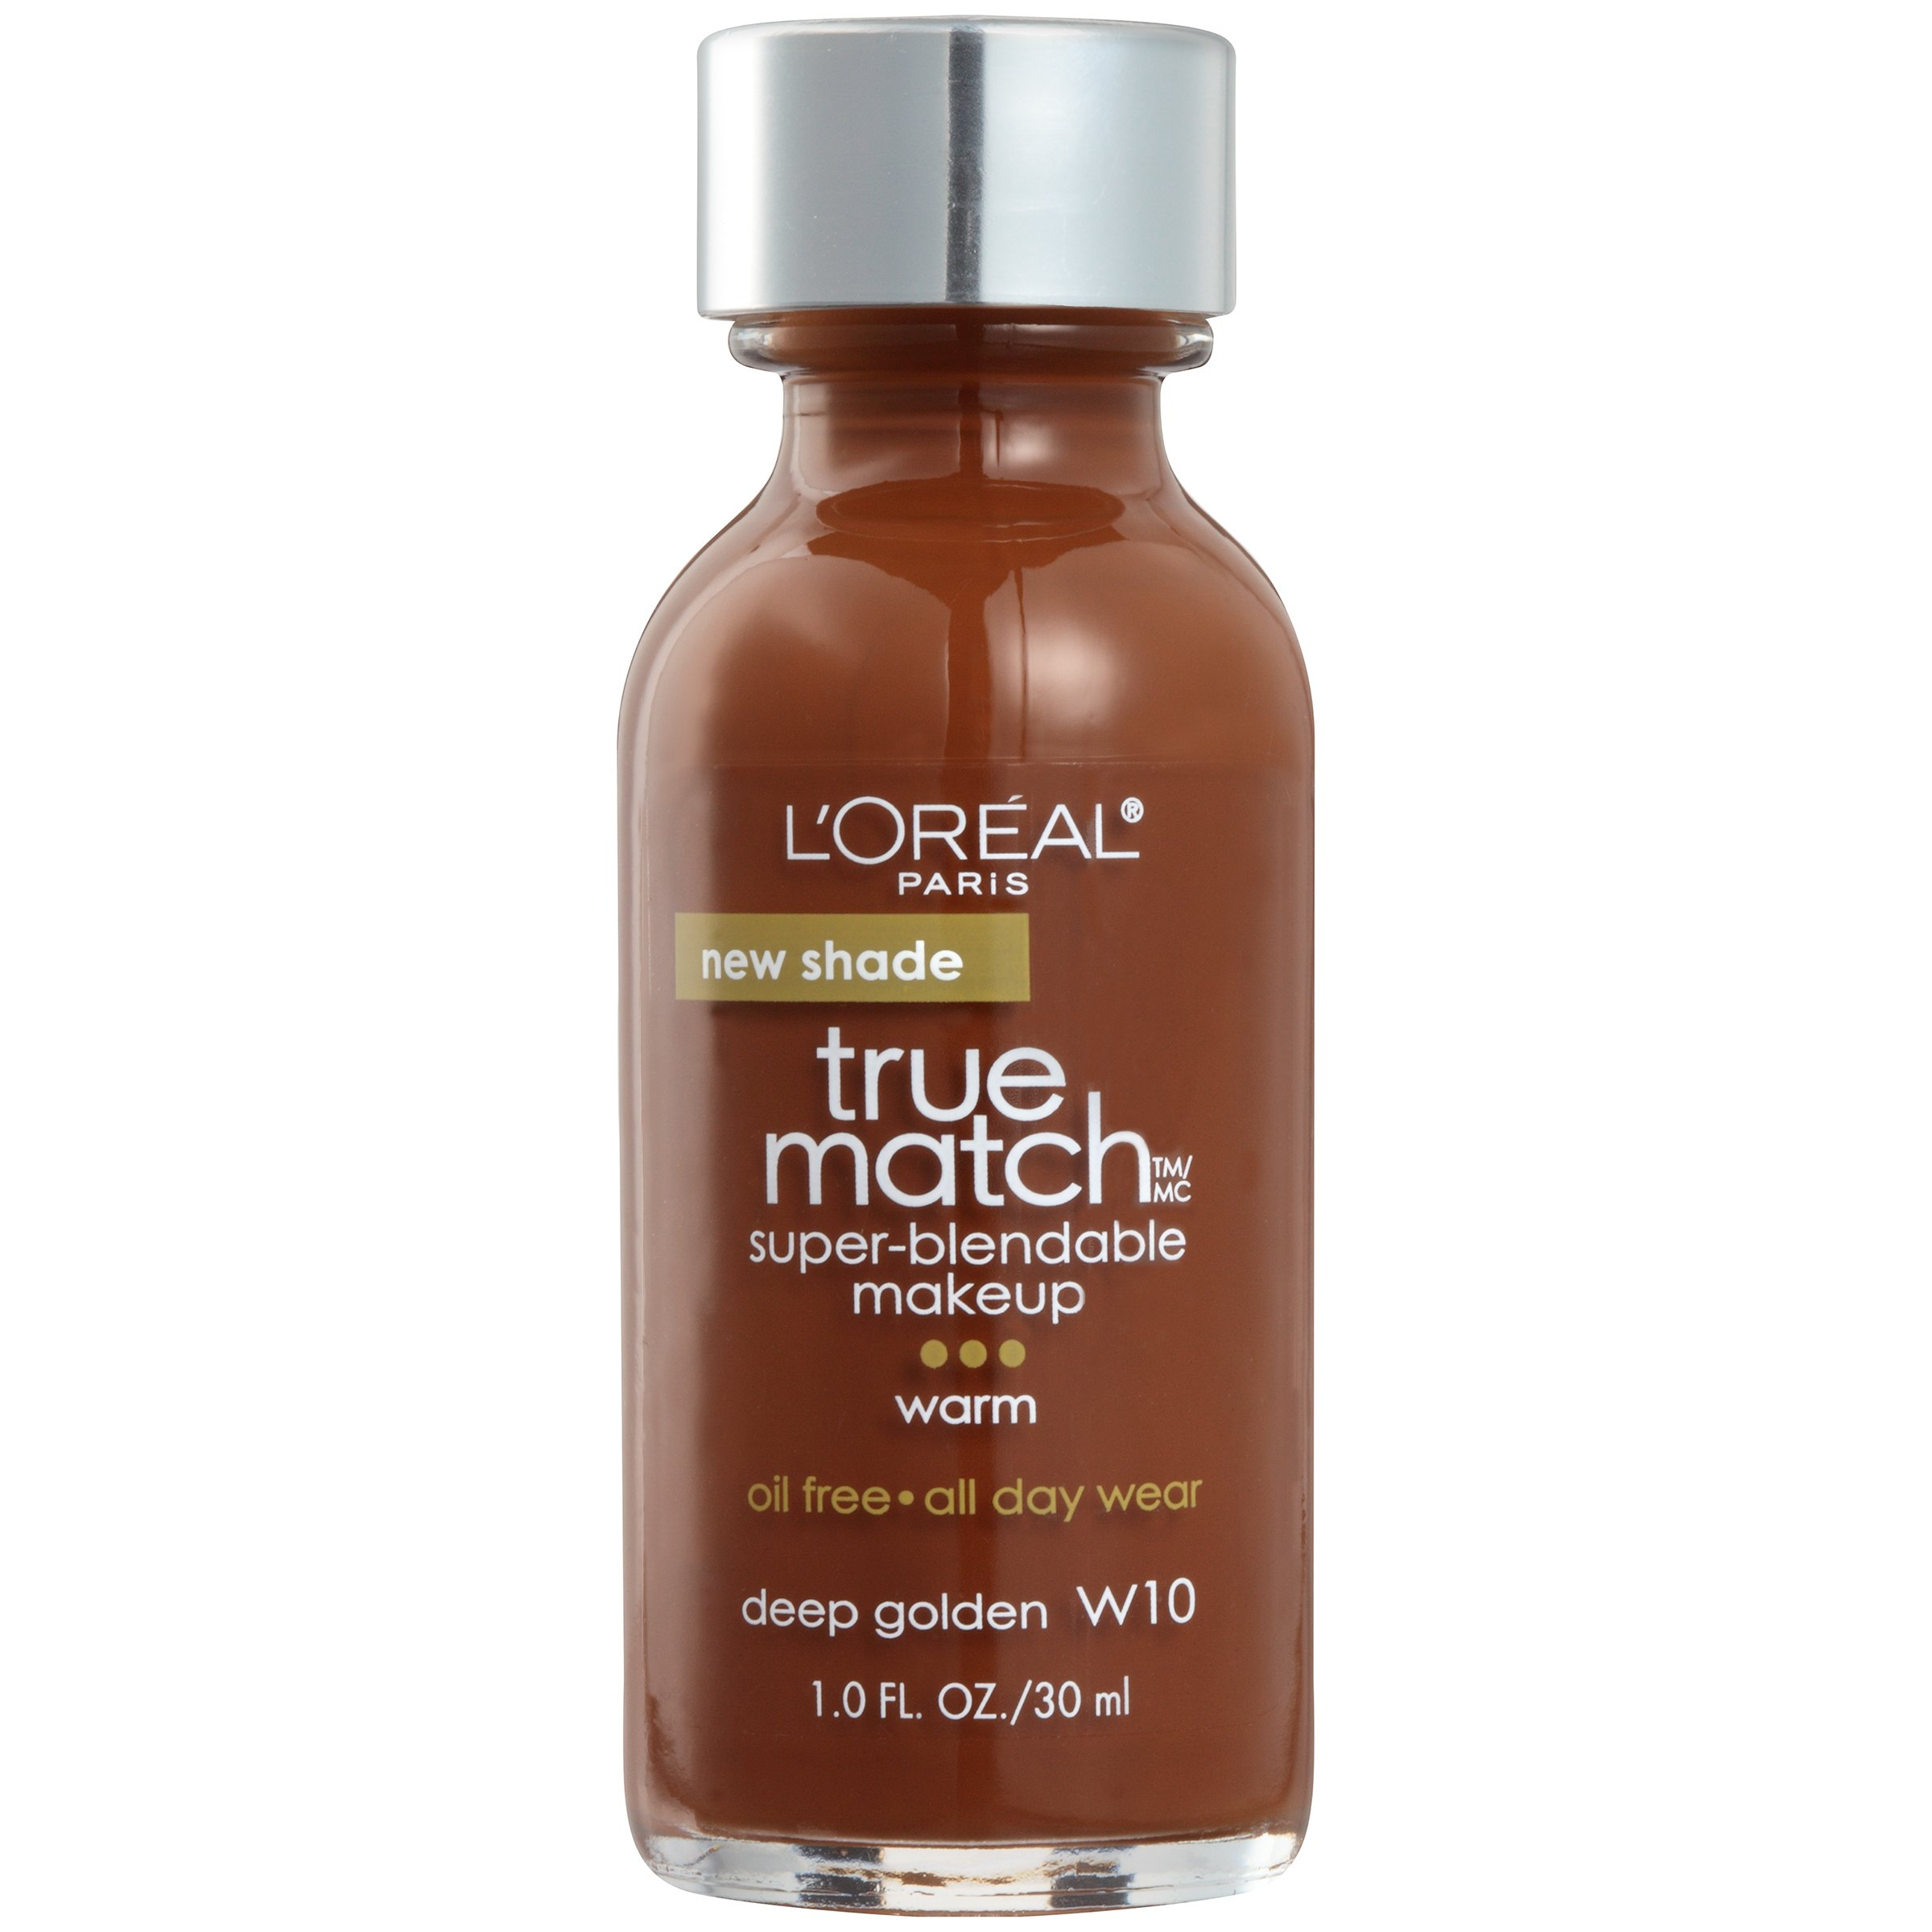 L'Oreal Paris Makeup True Match Super-Blendable Liquid Foundation, Deep Golden W10, 1 Fl Oz,1 Count